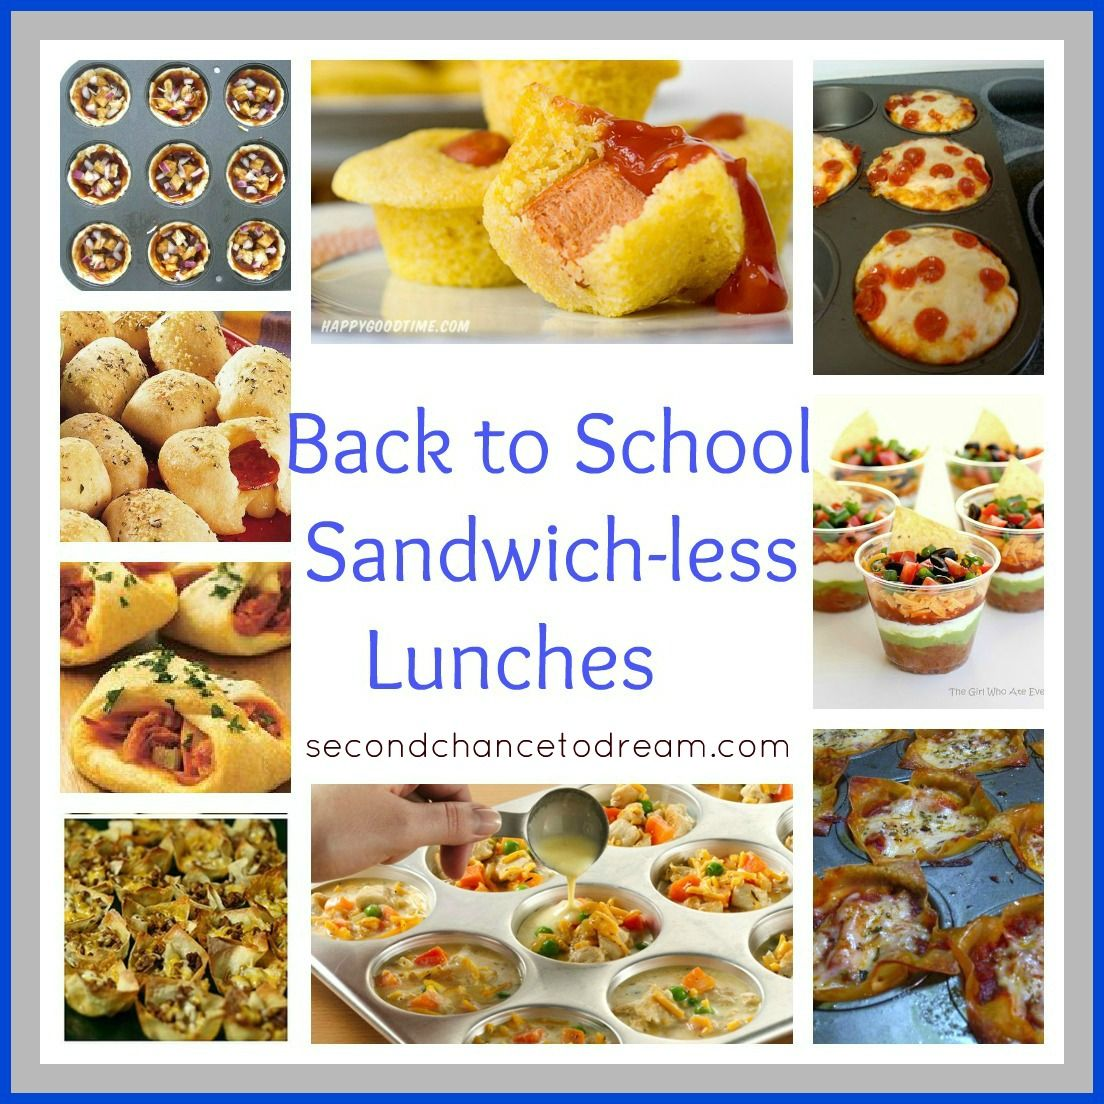 Back to school sandwich-less lunches